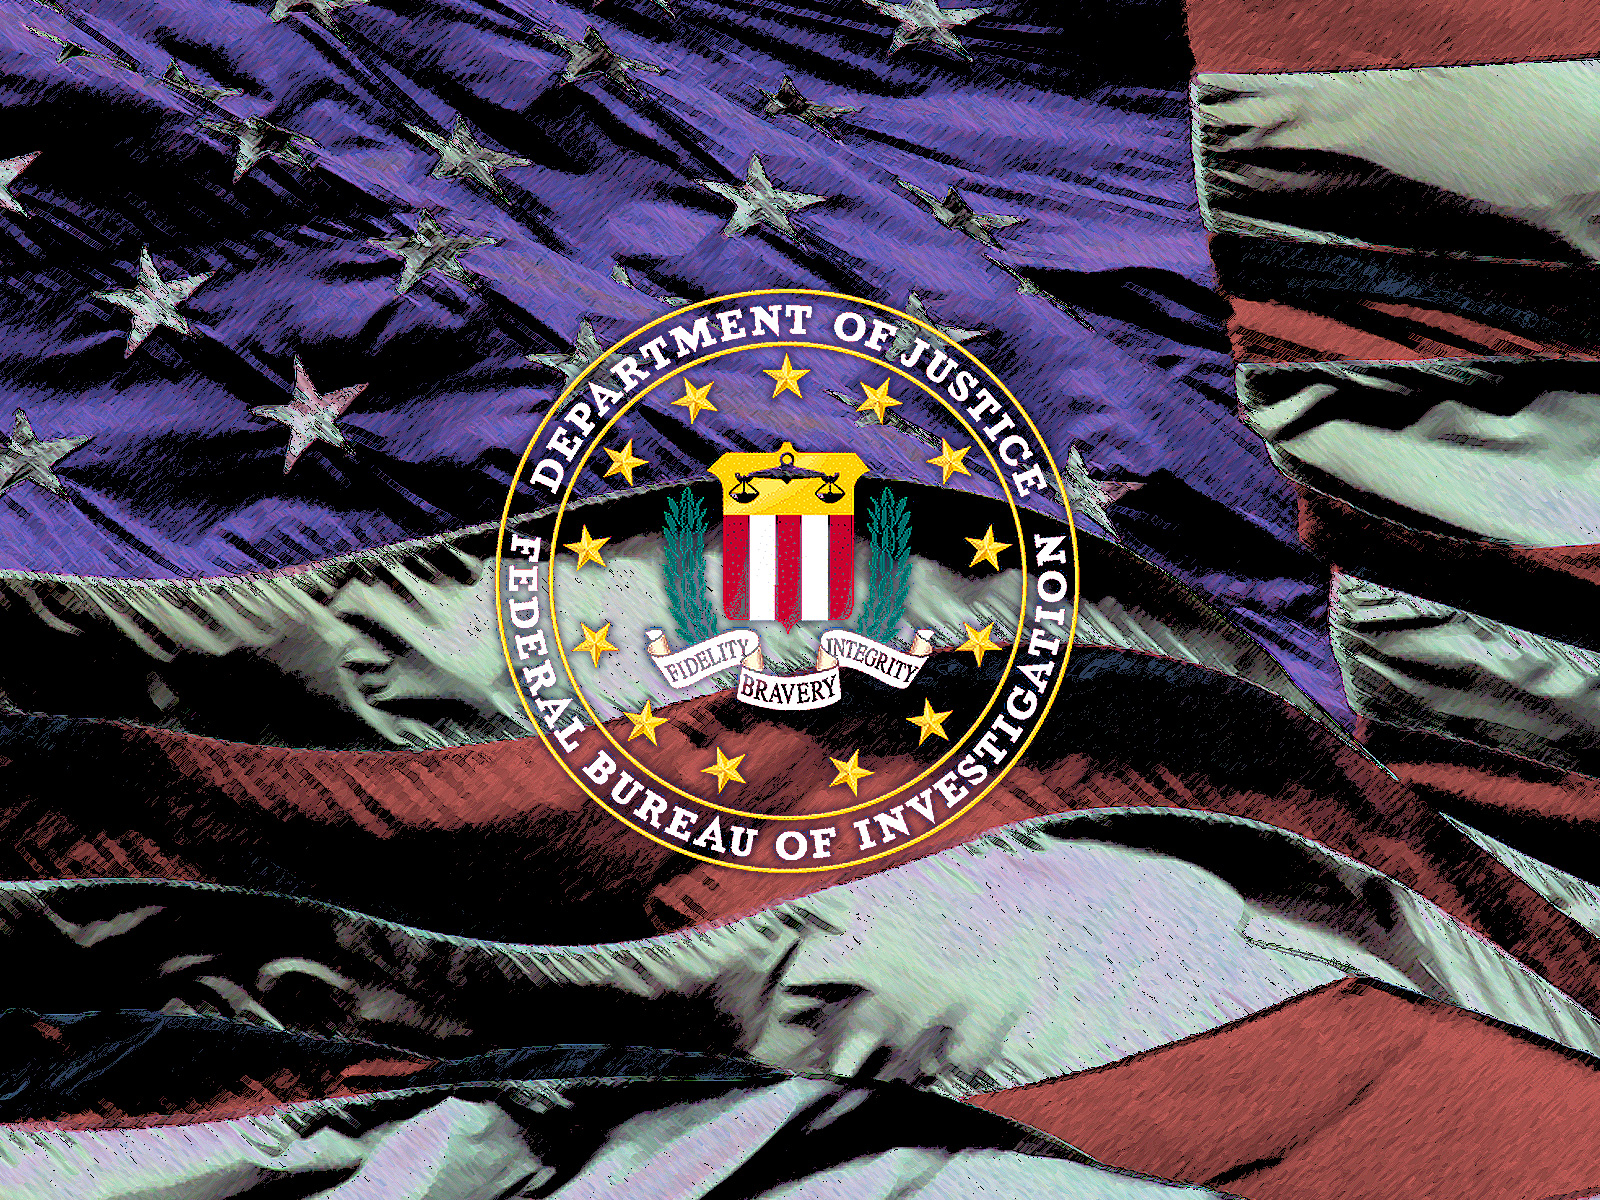 http://3.bp.blogspot.com/-aPjjUFaqaxc/TrqqwHaGHhI/AAAAAAAABH8/lRkwRwZVW6c/s1600/Federal_Bureau_of_Investigation_Logo_with_USA_Flag_Wallpapers.jpg